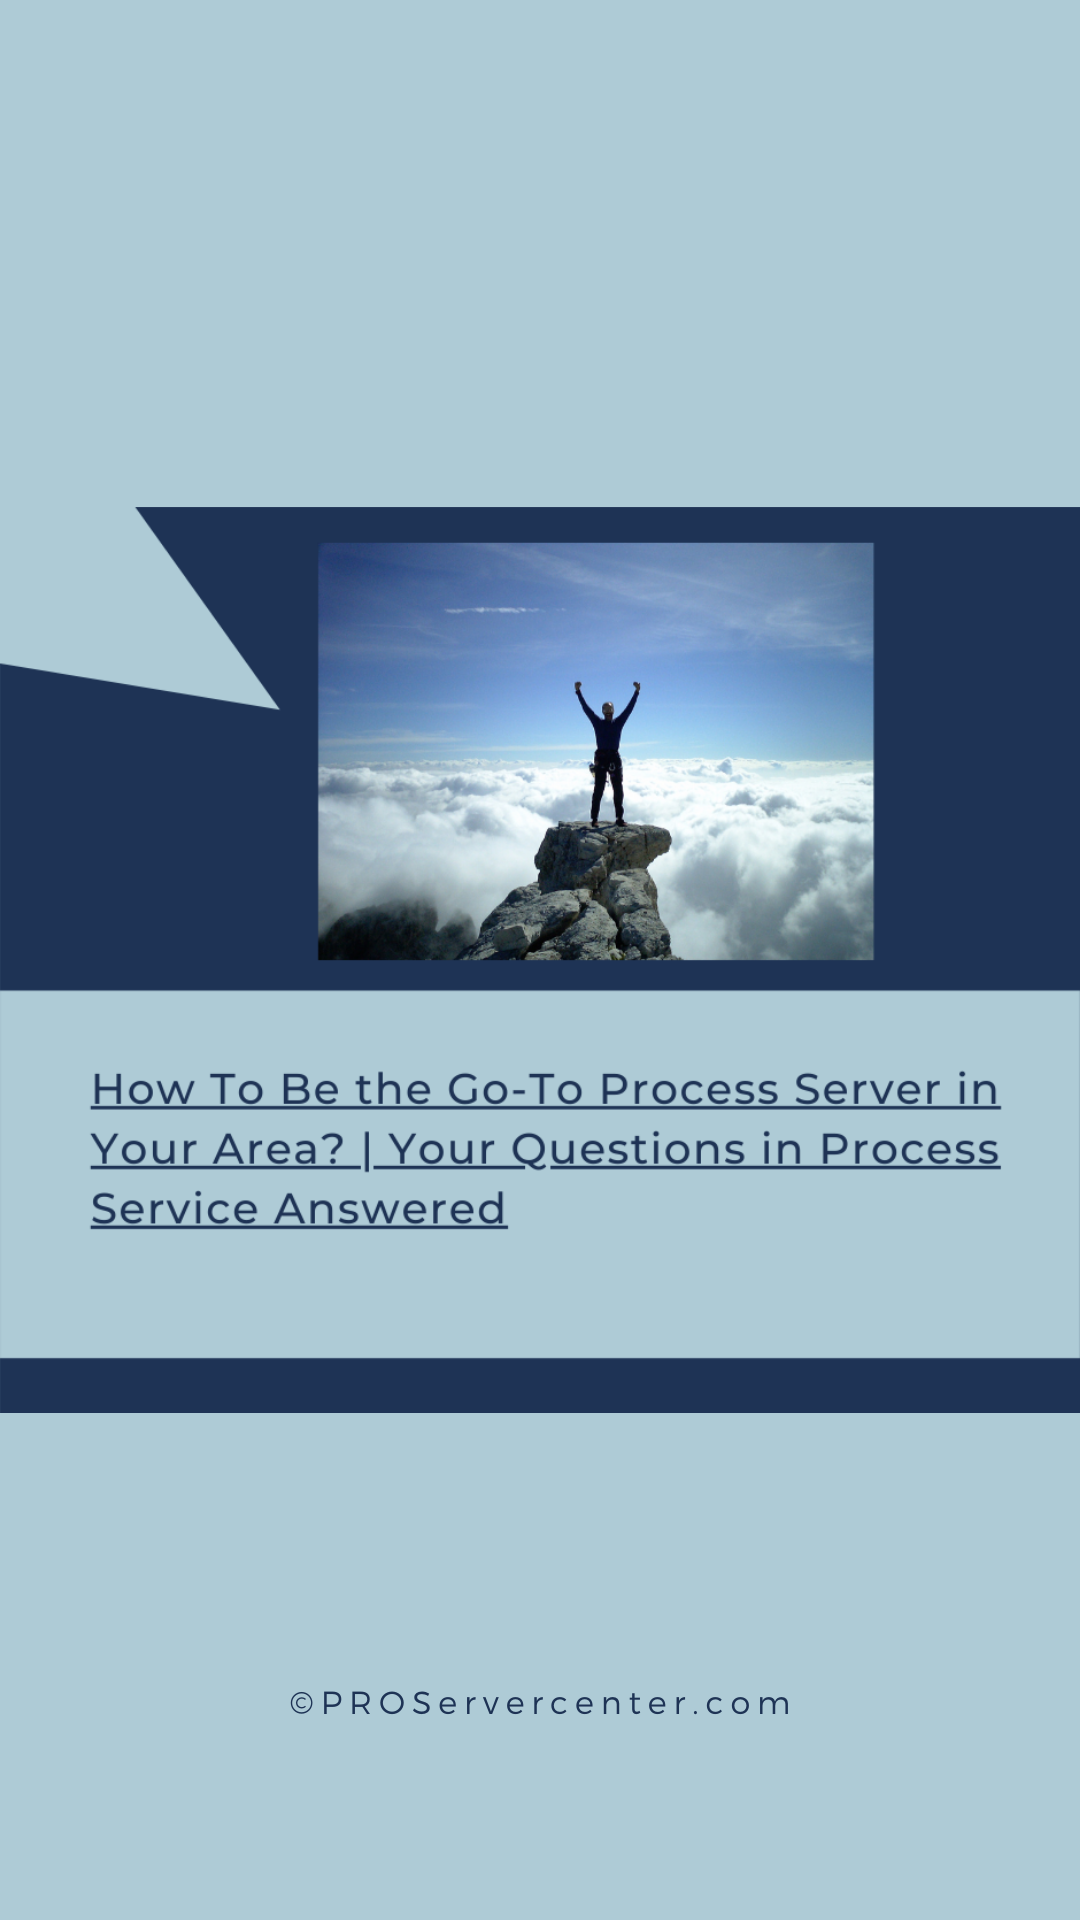 How to be the Go To Process Server in your area?